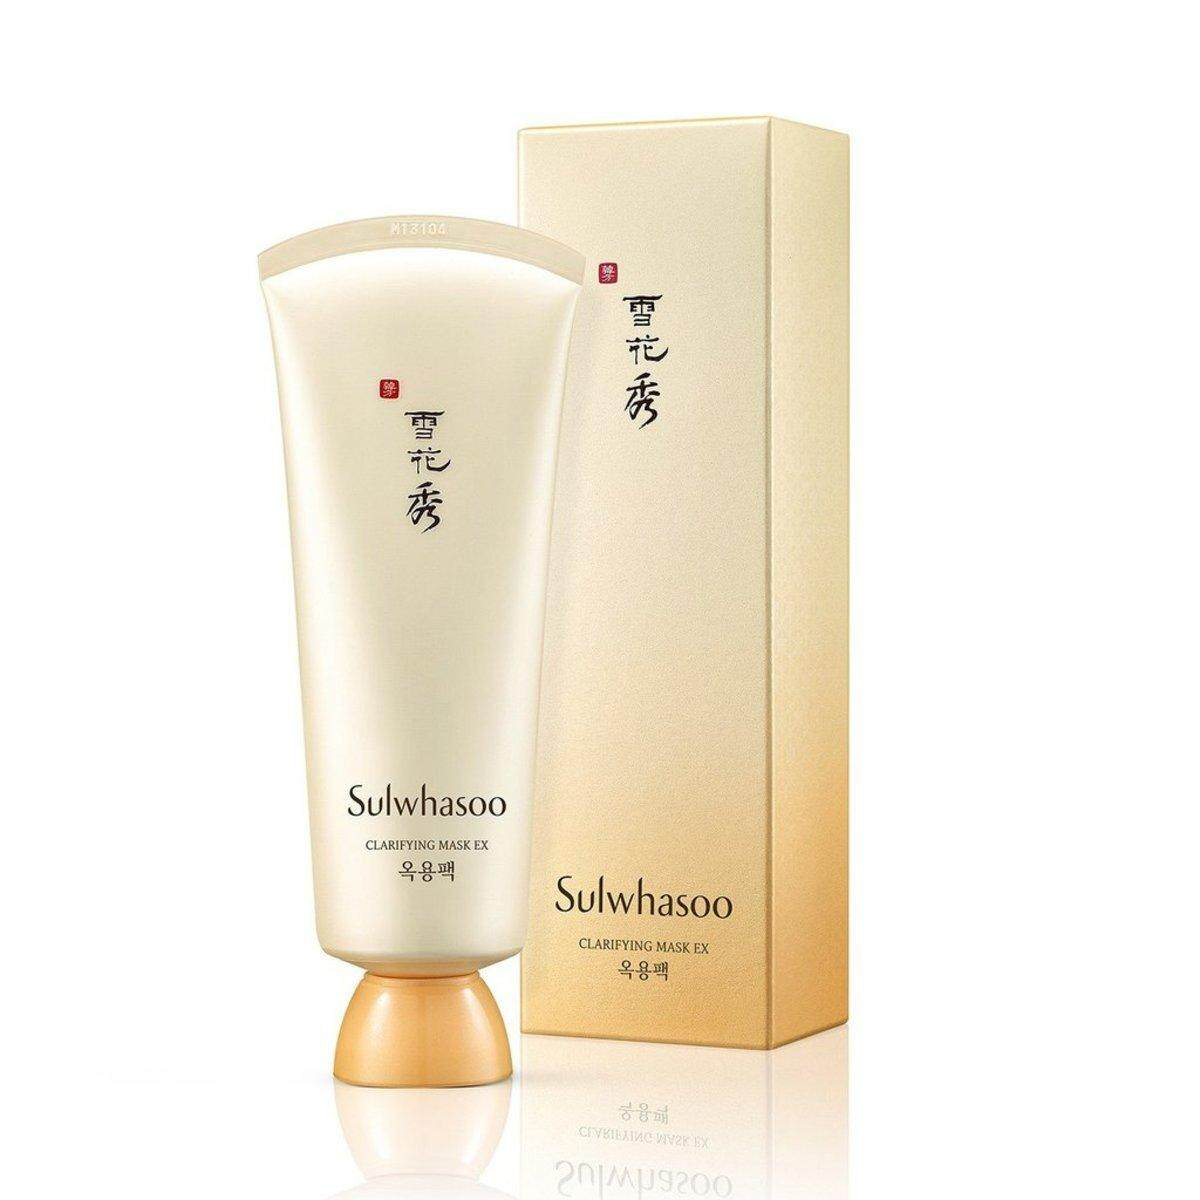 Sulwhasoo Products For The Best Price In Malaysia Time Treasure Renovating Water Ex 125ml Face Mask Packs